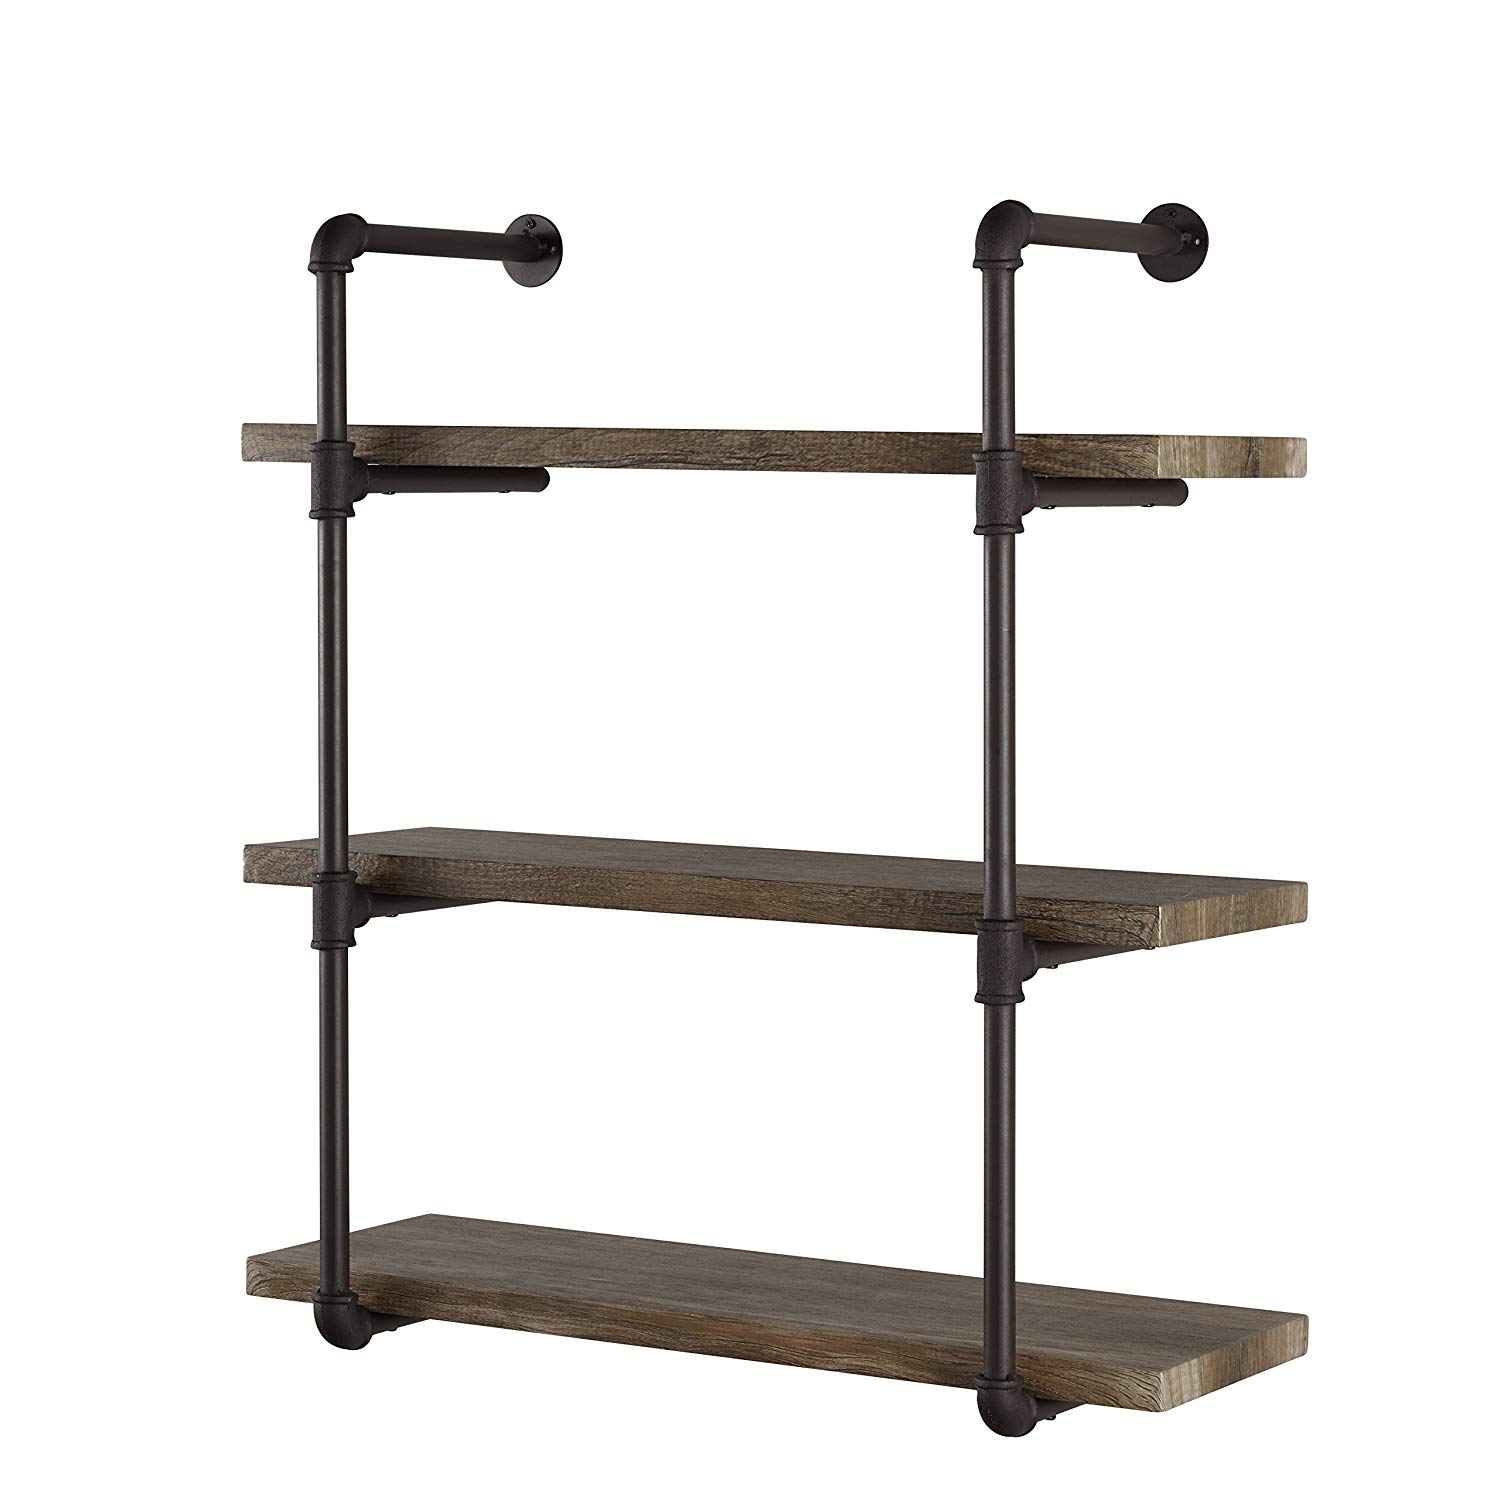 Cheap Iron Pipe Bed Frame, find Iron Pipe Bed Frame deals on line at ...